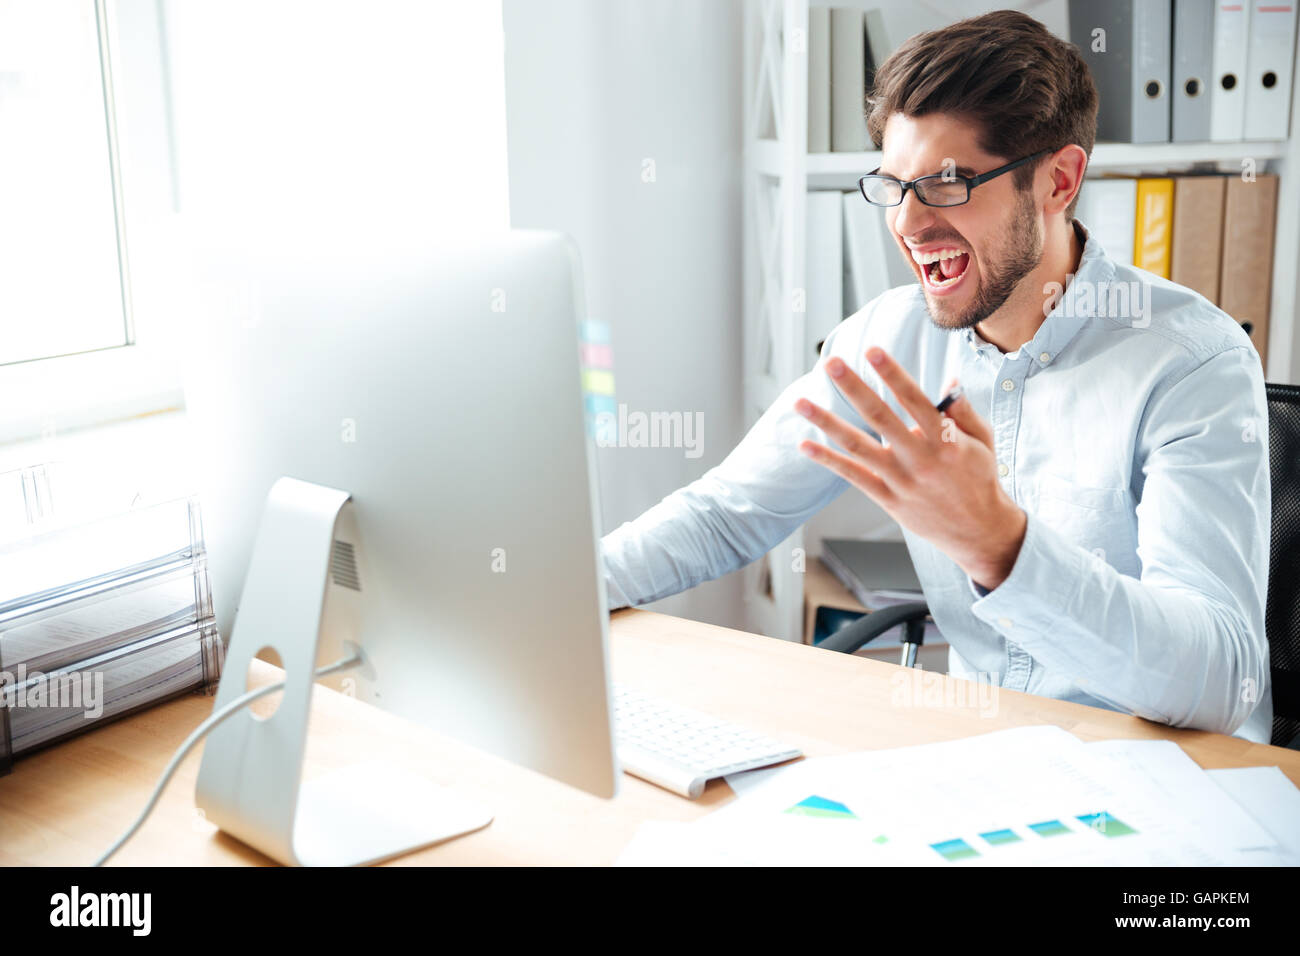 Angry mad young businessman working with computer and shouting in office - Stock Image